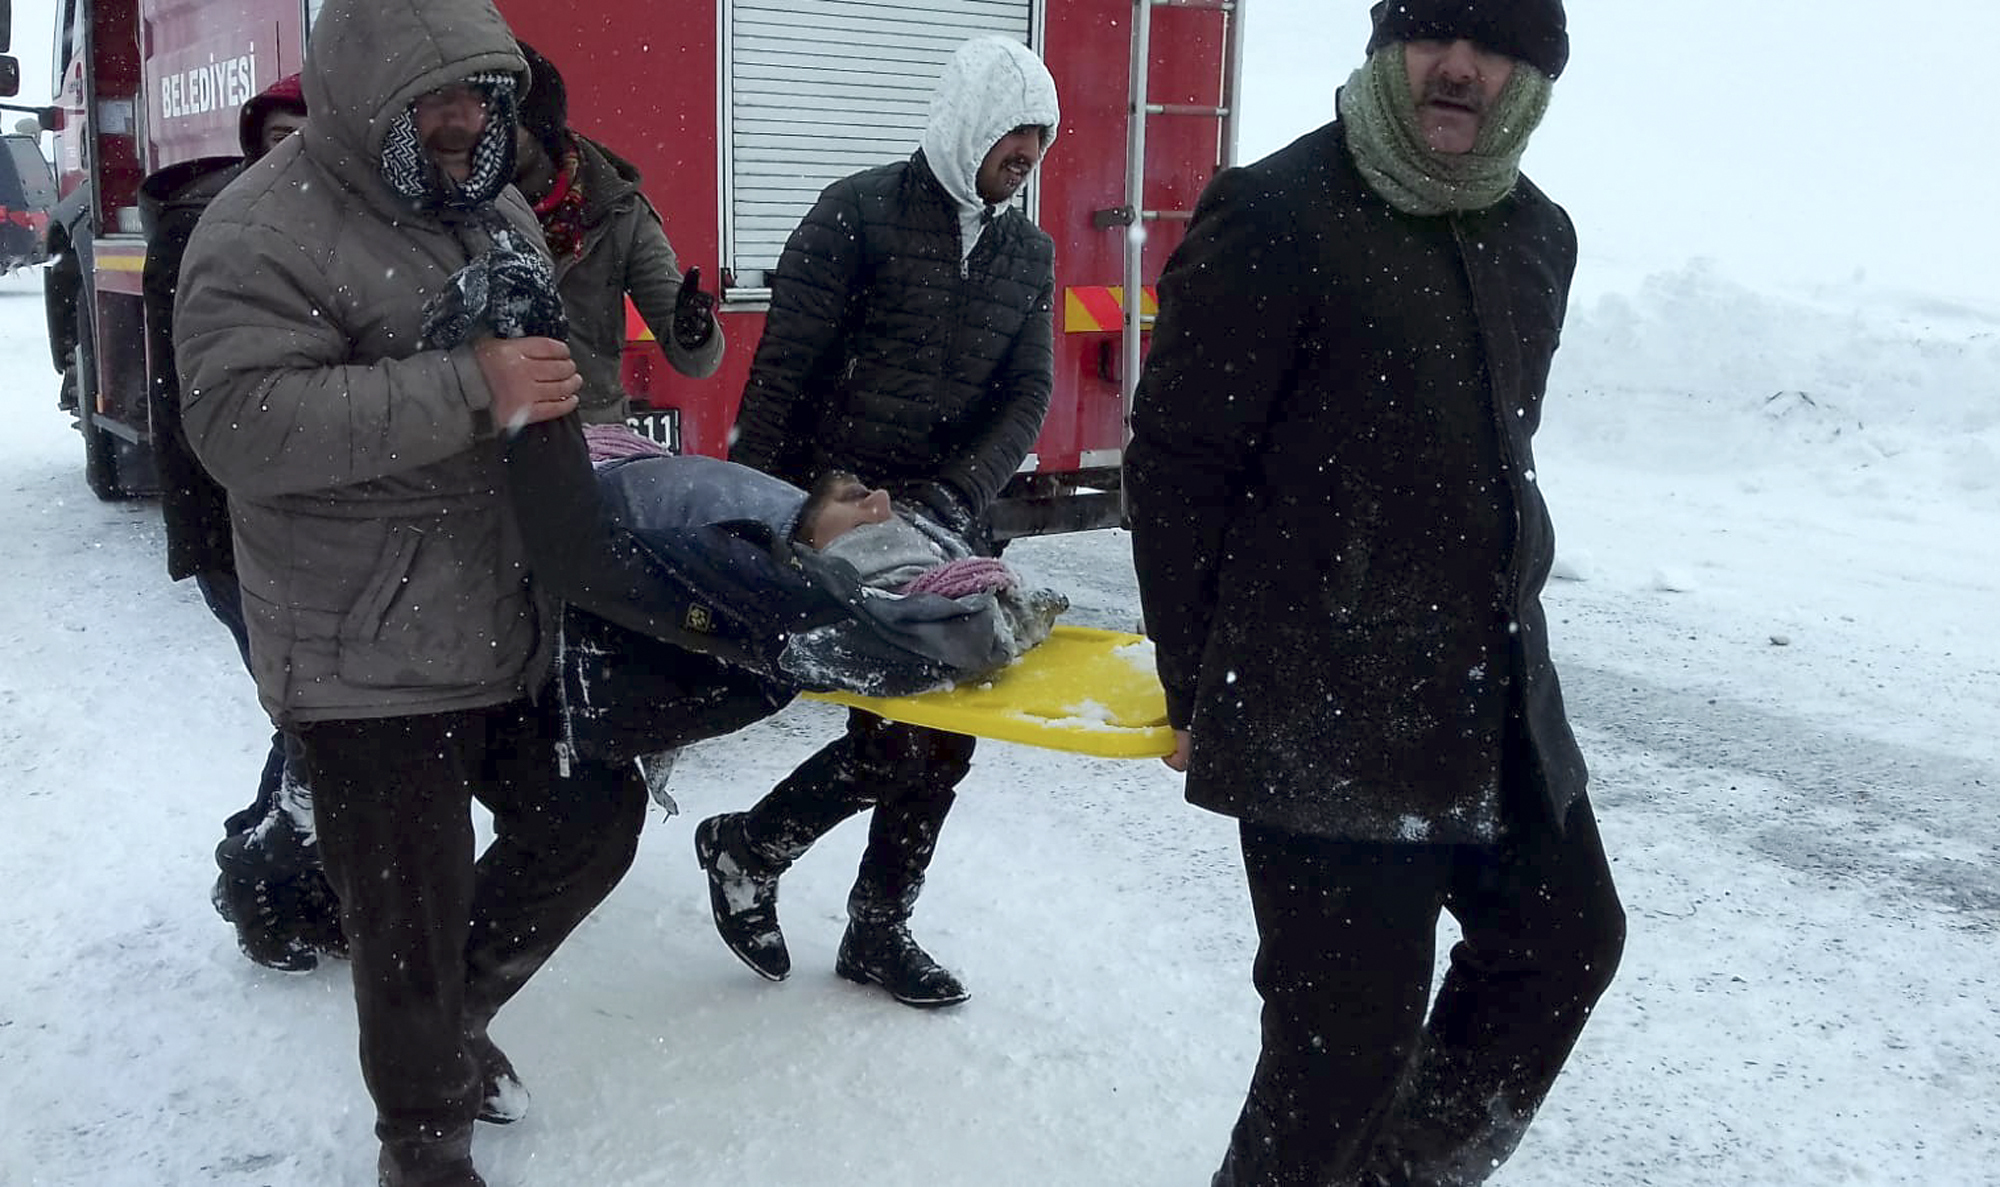 Emergency service members carry a casualty from an avalanche near the town of Bahcesehir, in Van province, eastern Turkey on Feb. 5, 2020.